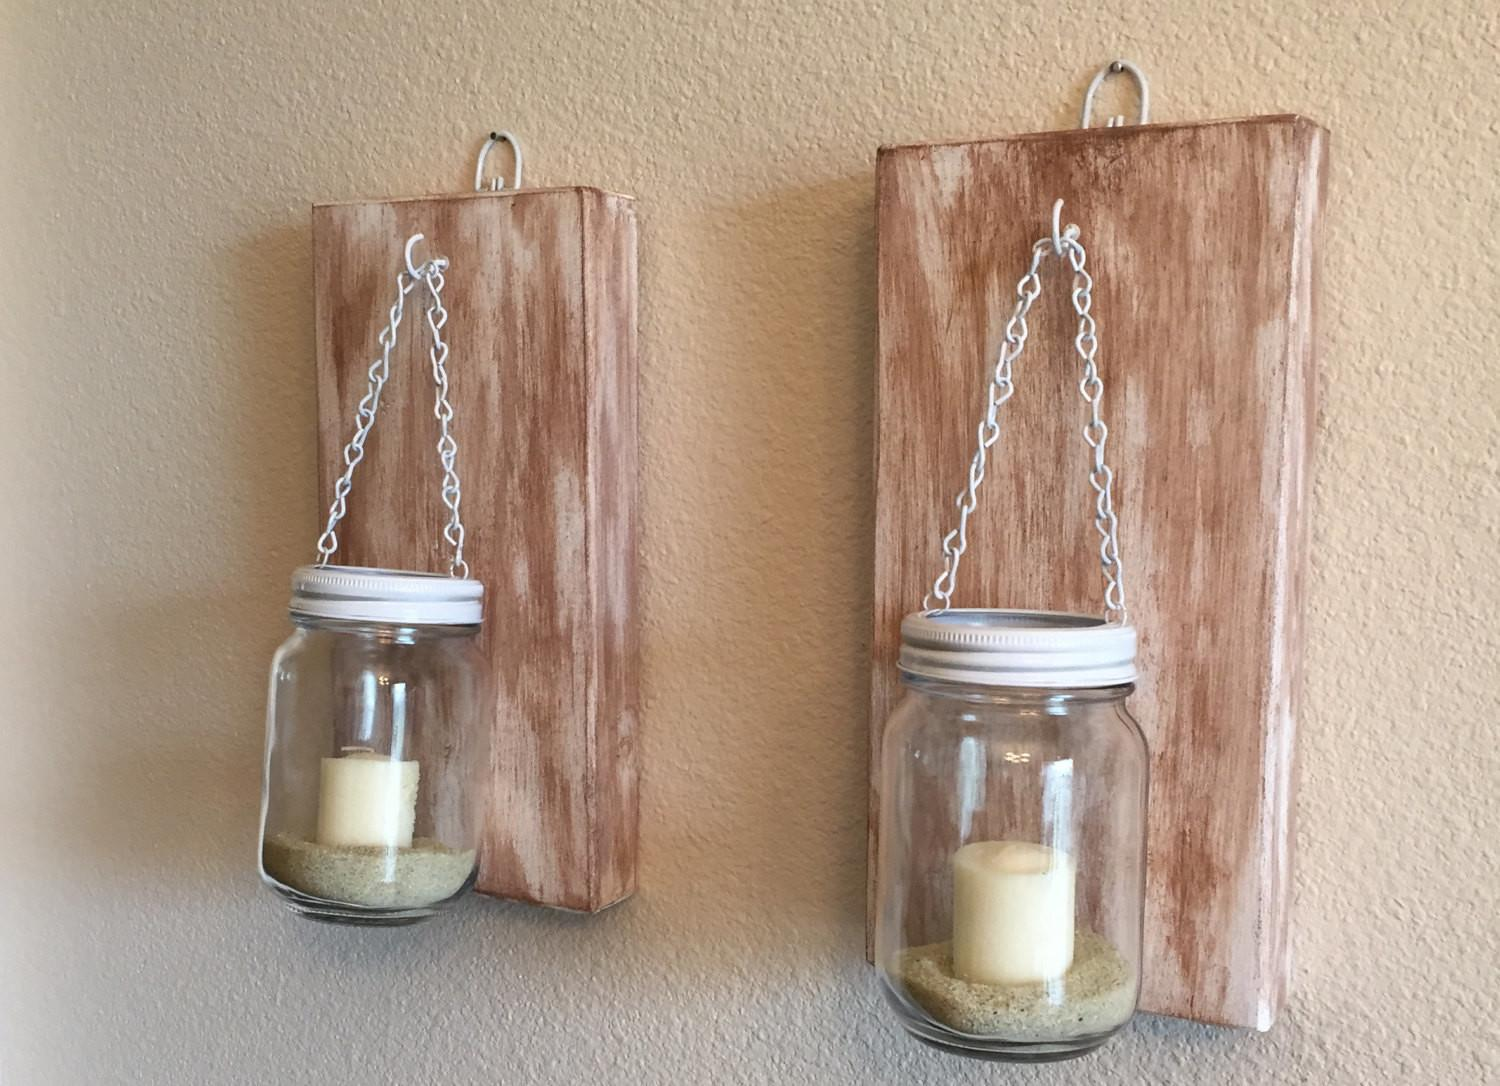 Set Rustic Mason Jar Wall Sconce Candle Sconces Narsch